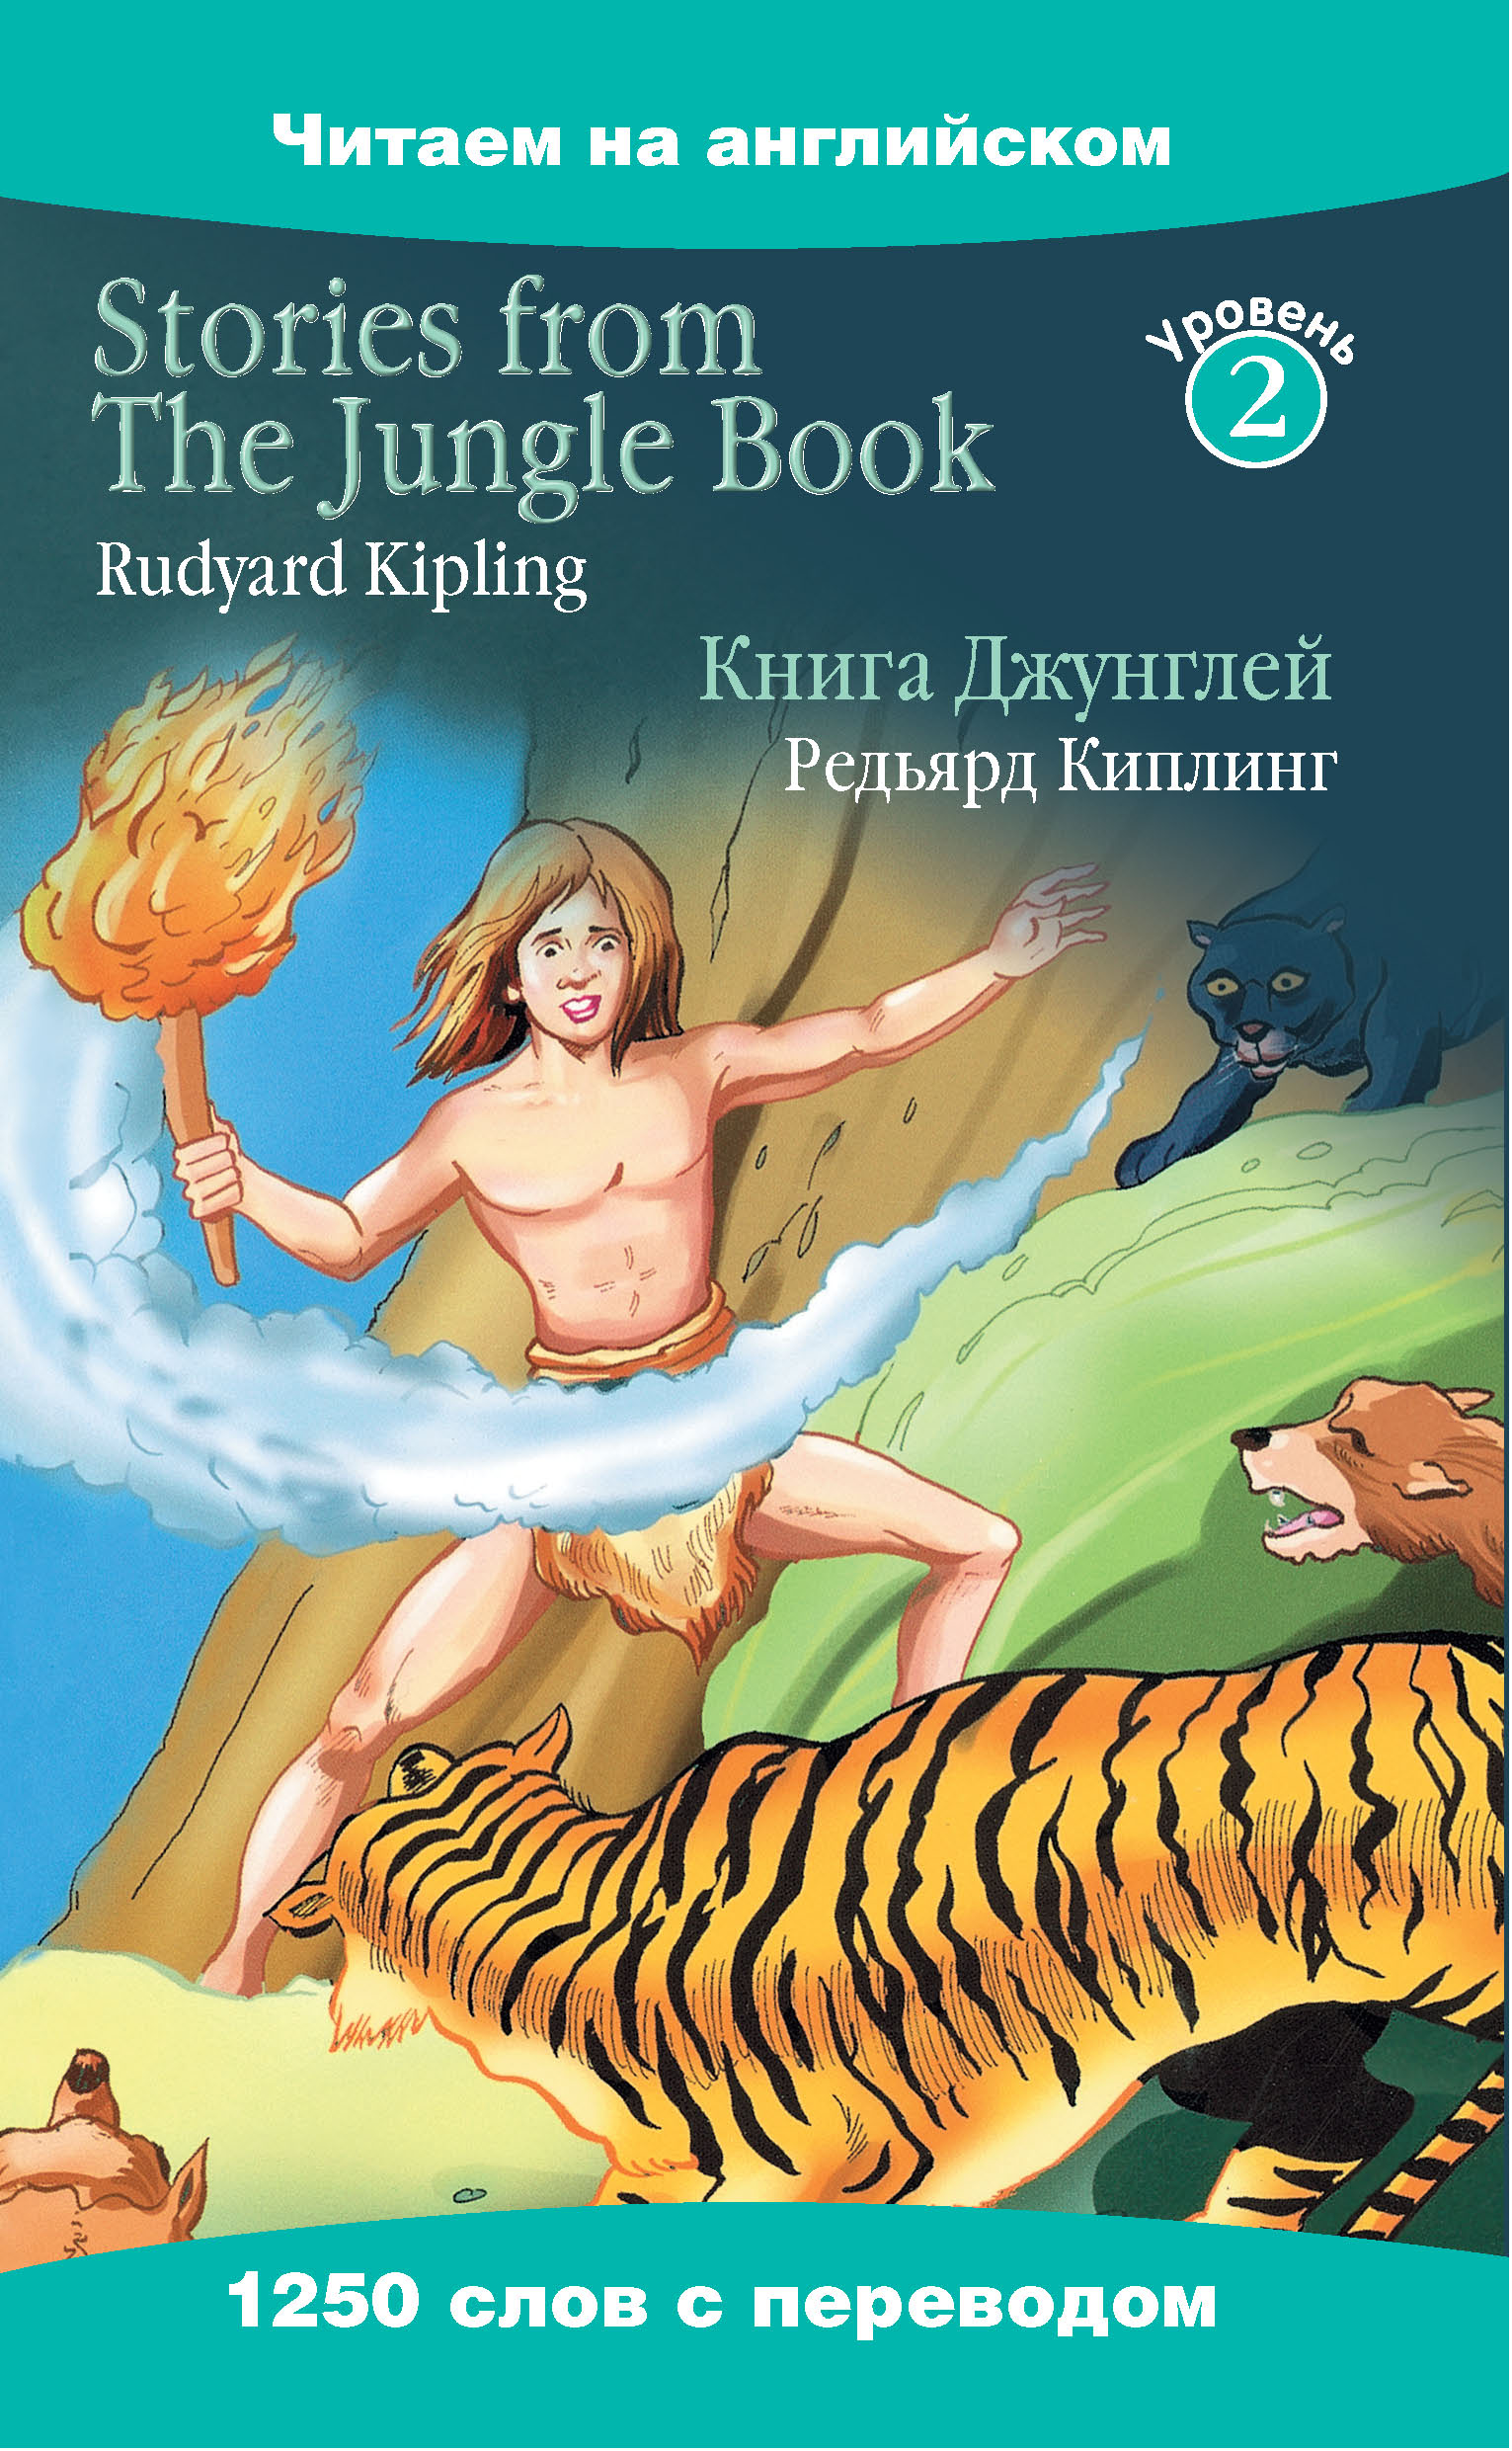 Редьярд Киплинг Stories from The Jungle Book / Книга Джунглей the jungle book